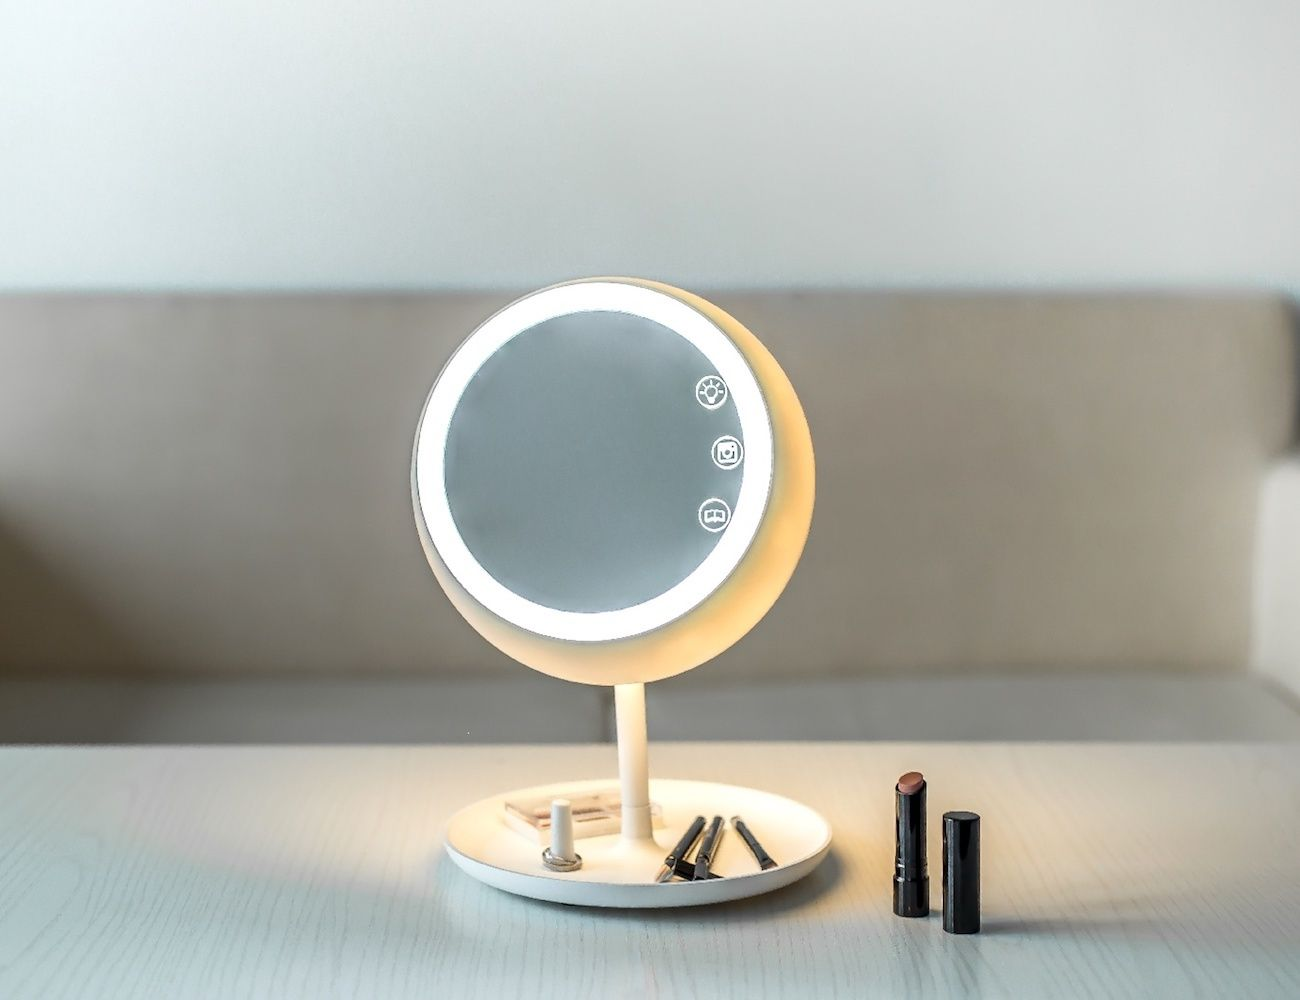 This Smart Makeup Mirror Actually Has 4 Functions